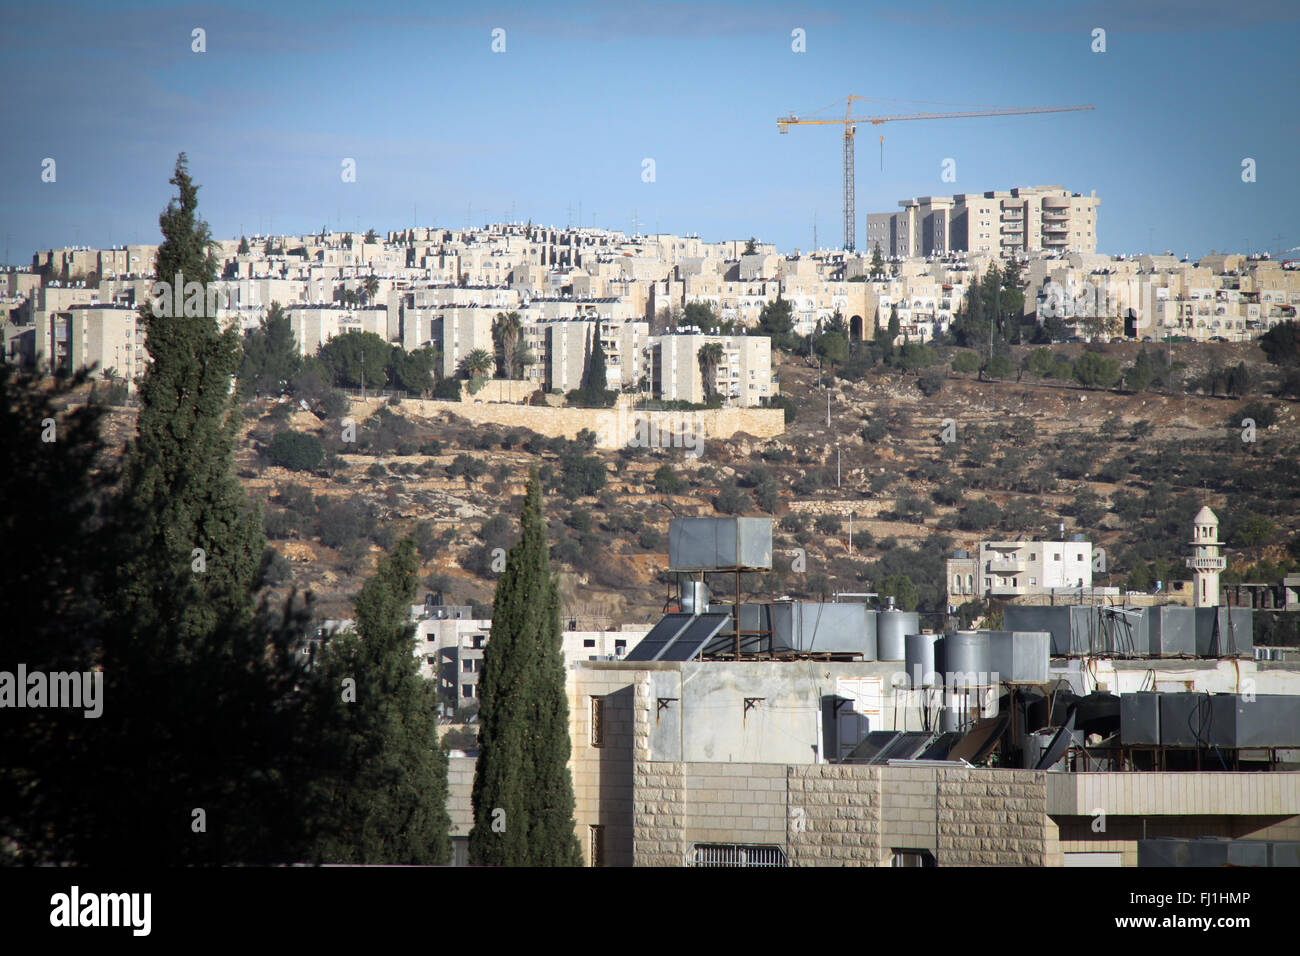 Constructions of Jewish Israeli Settlements and buildinds seen from Bethlehem - Palestinian occupied territories - Stock Image